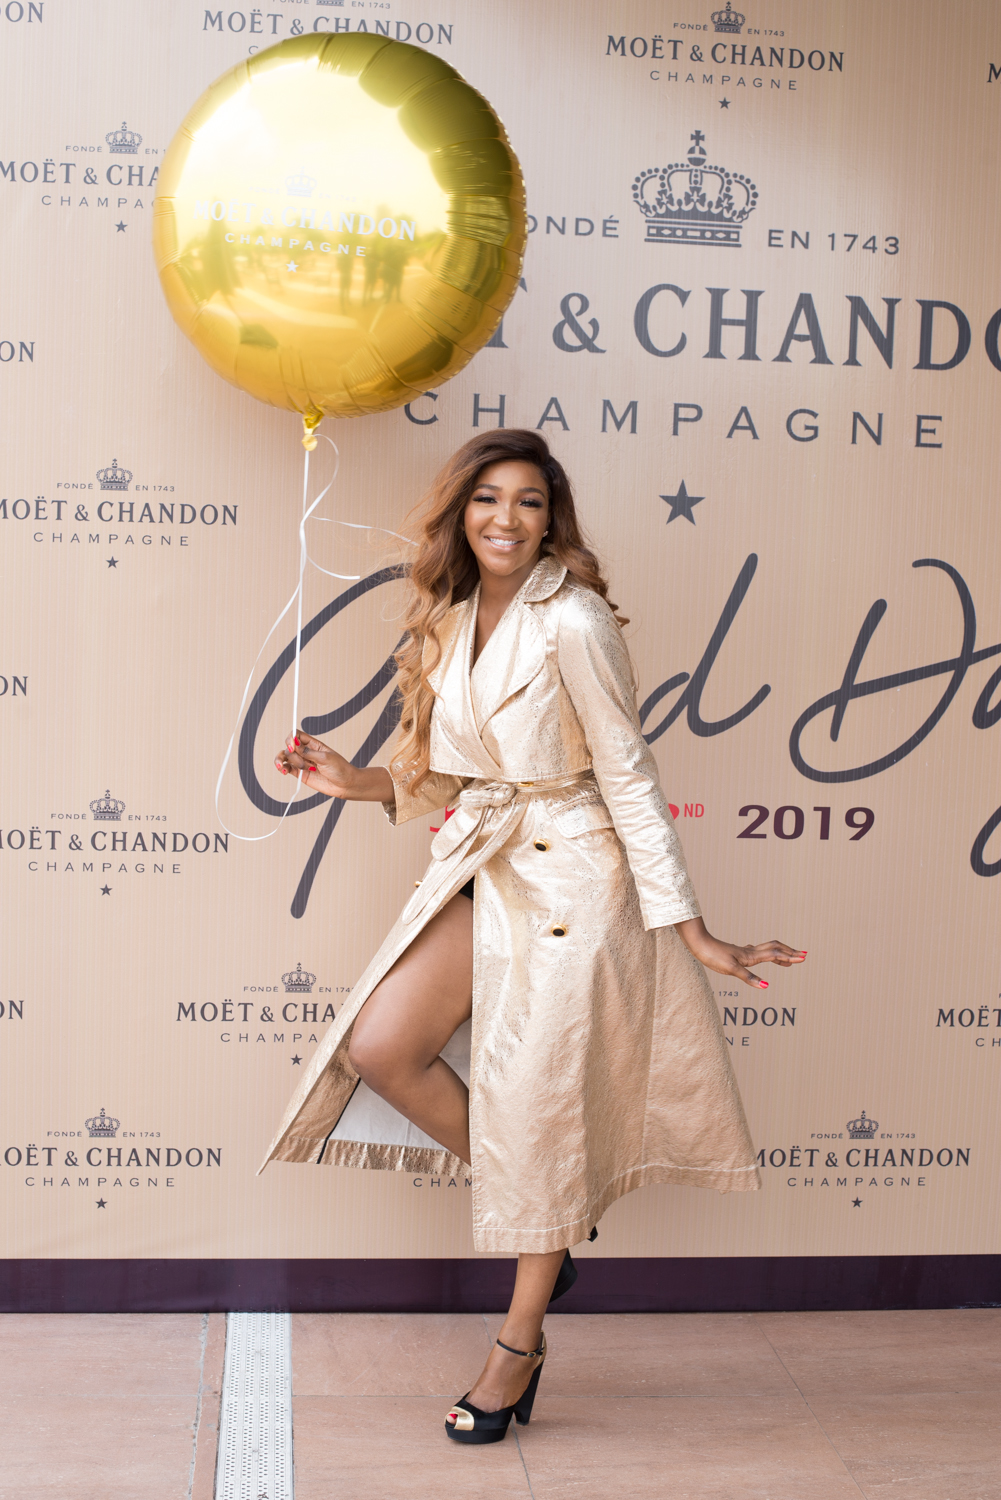 See All That Happened At #moetgrandday With Your Faves photo